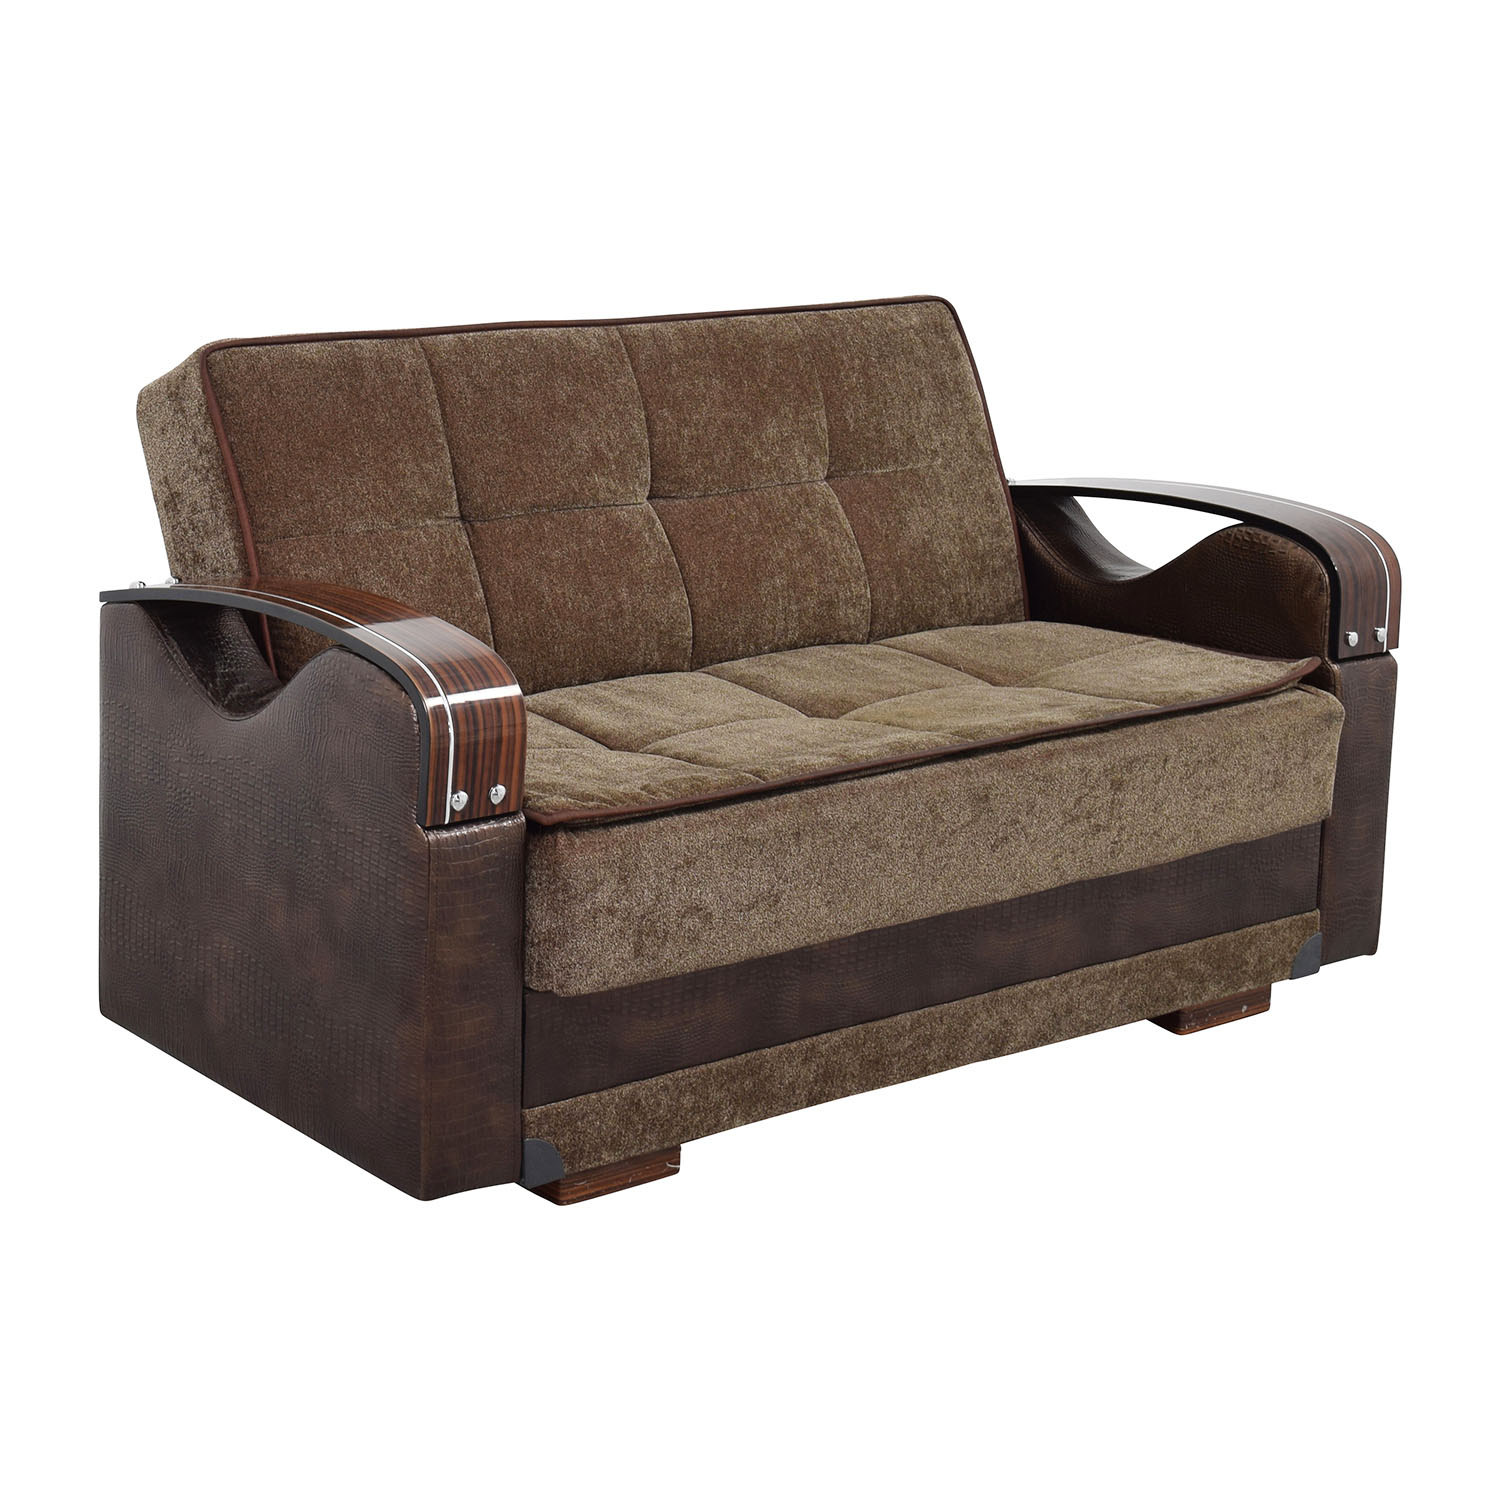 55 Off Na Brown Futon Love Seat With Wooden Armrest Sofas